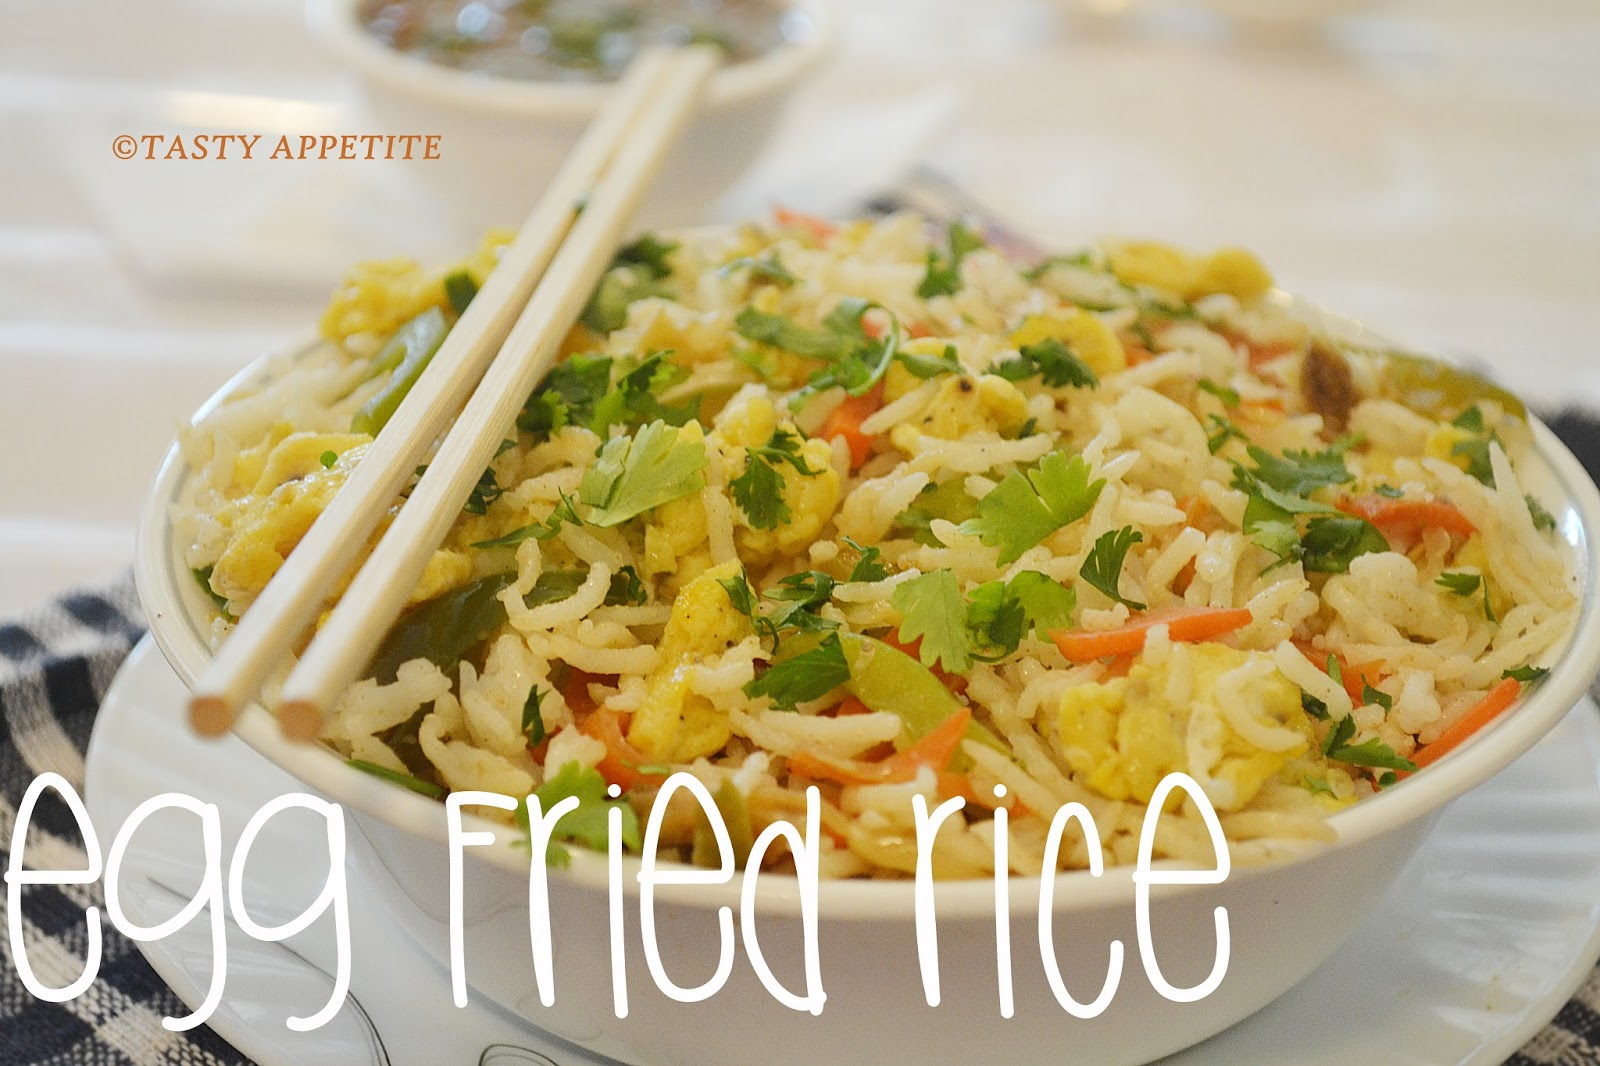 Egg fried rice restaurant style fried rice recipe quick easy it can be prepared in a jiffy and has a special place in my home also this easy meal is a great way to use up left over rice vegetables ccuart Image collections